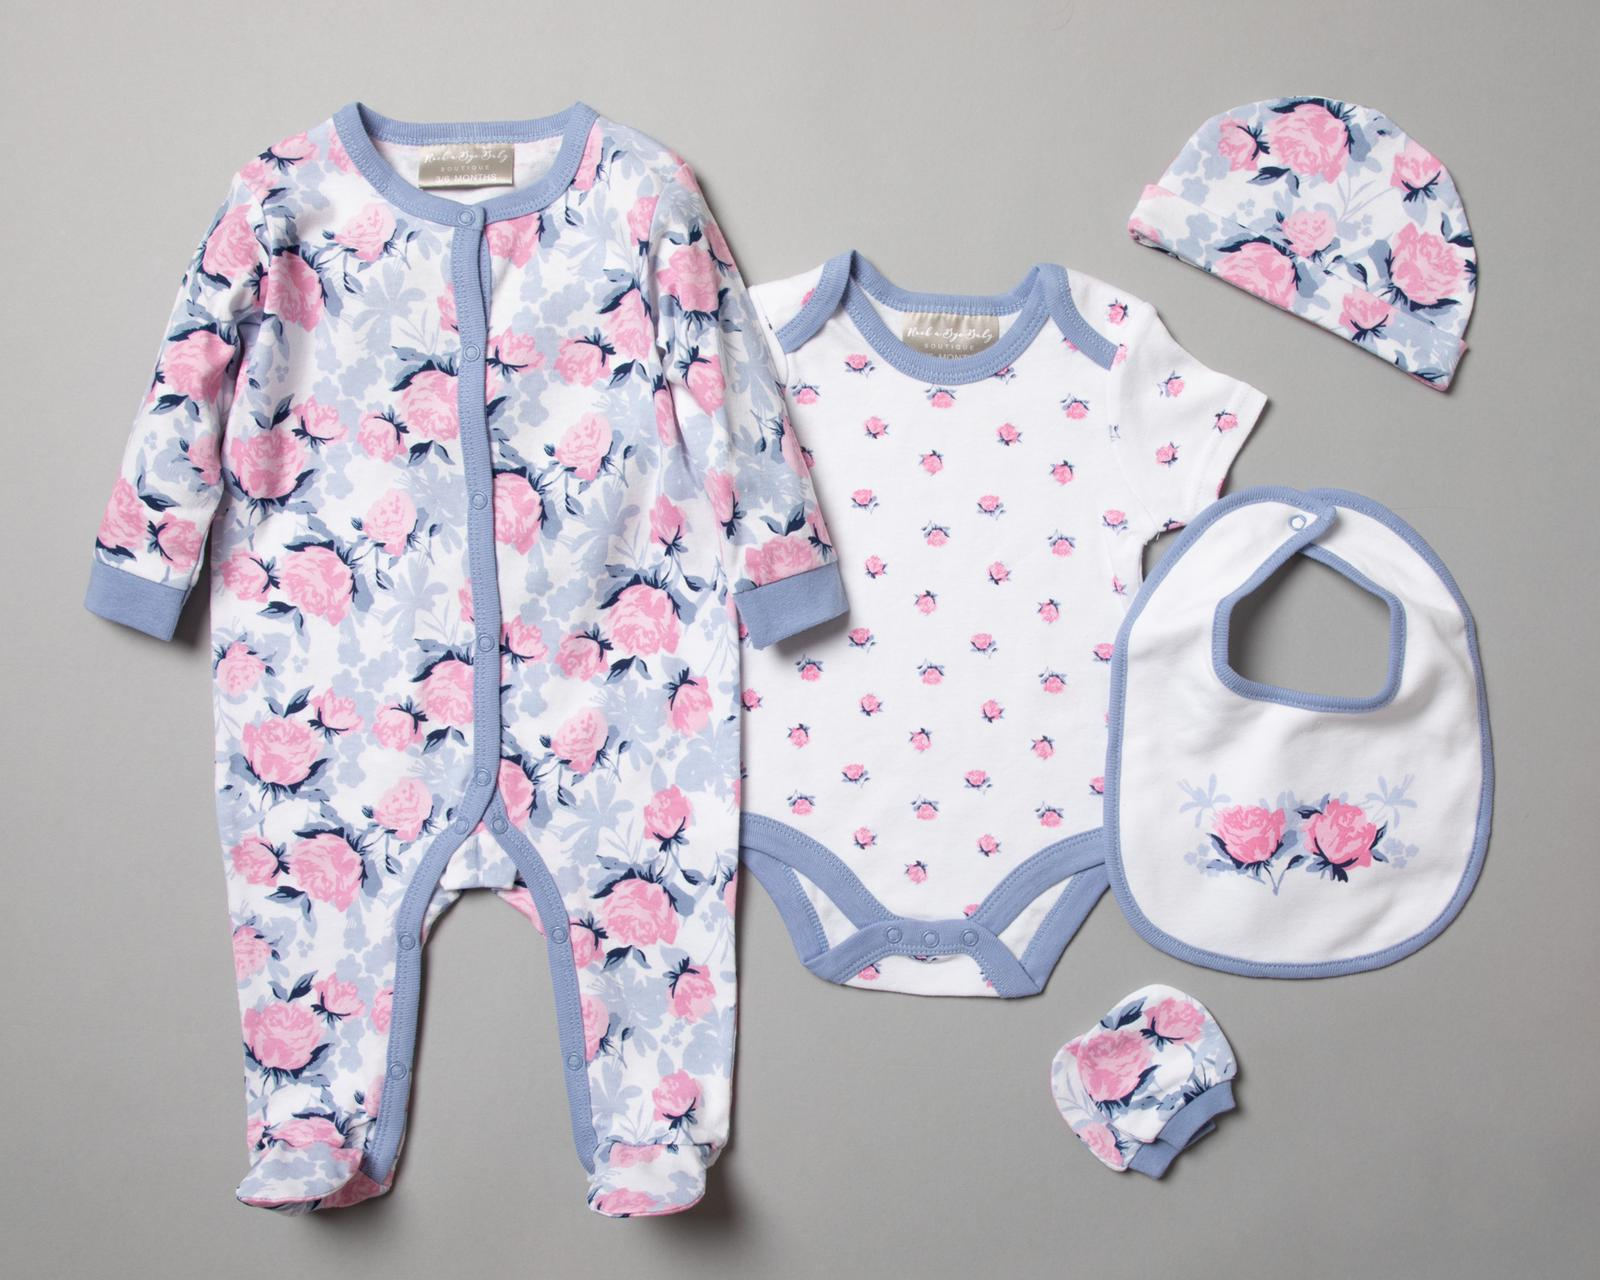 Baby Girls Baby Romper Gift Set with Free Gift Bag